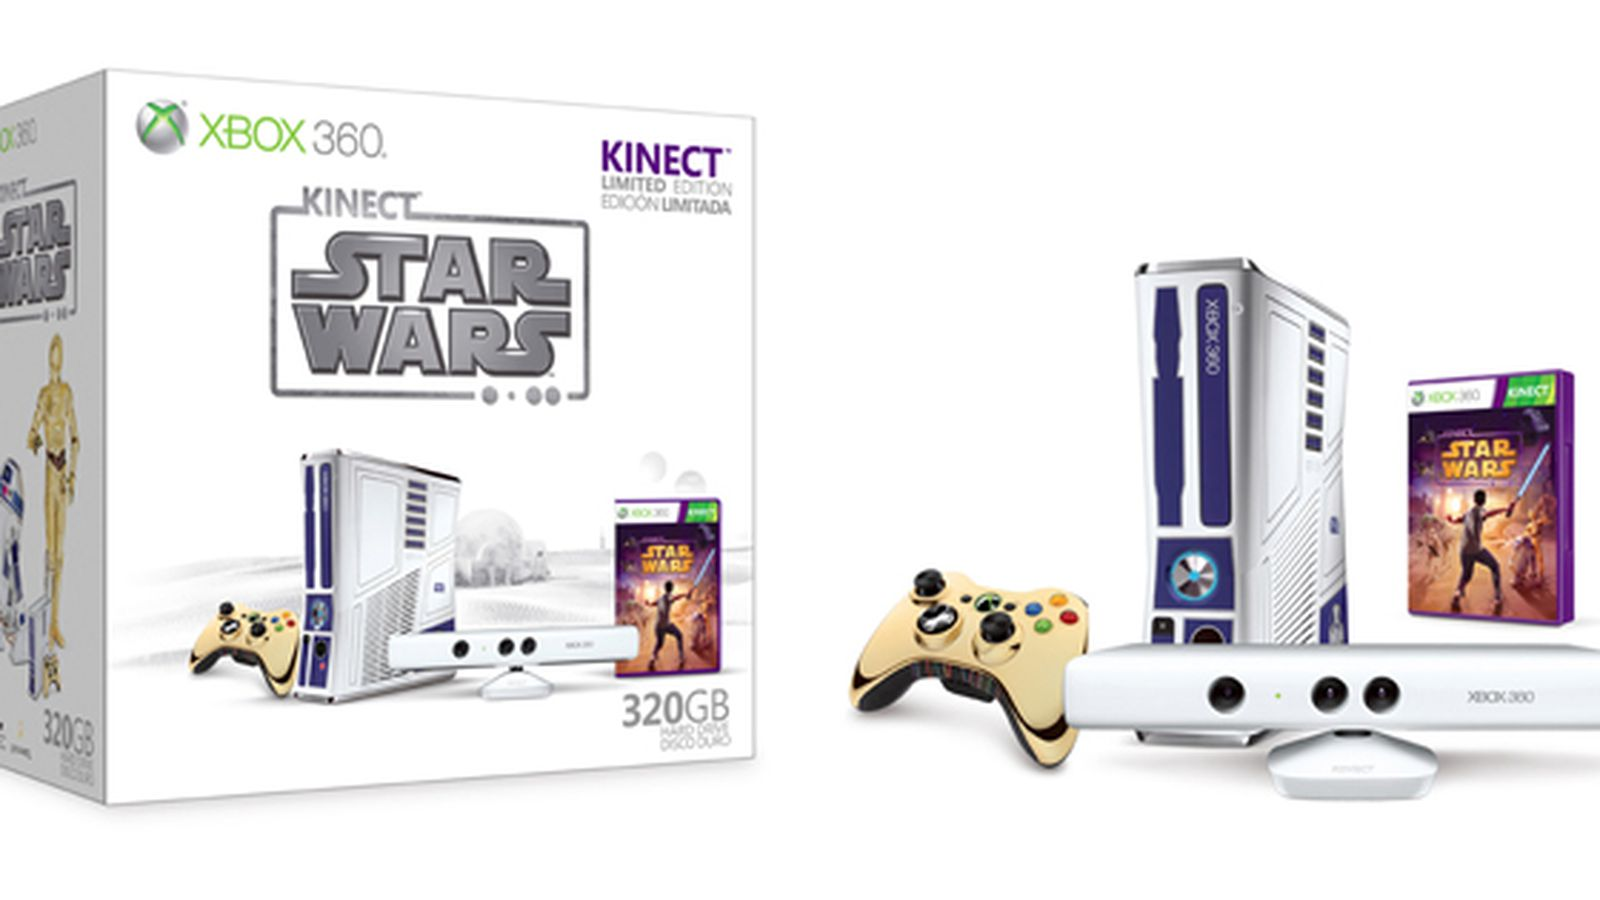 Star Wars Xbox 360 Bundle And Kinect Game Launching April 3rd The Verge